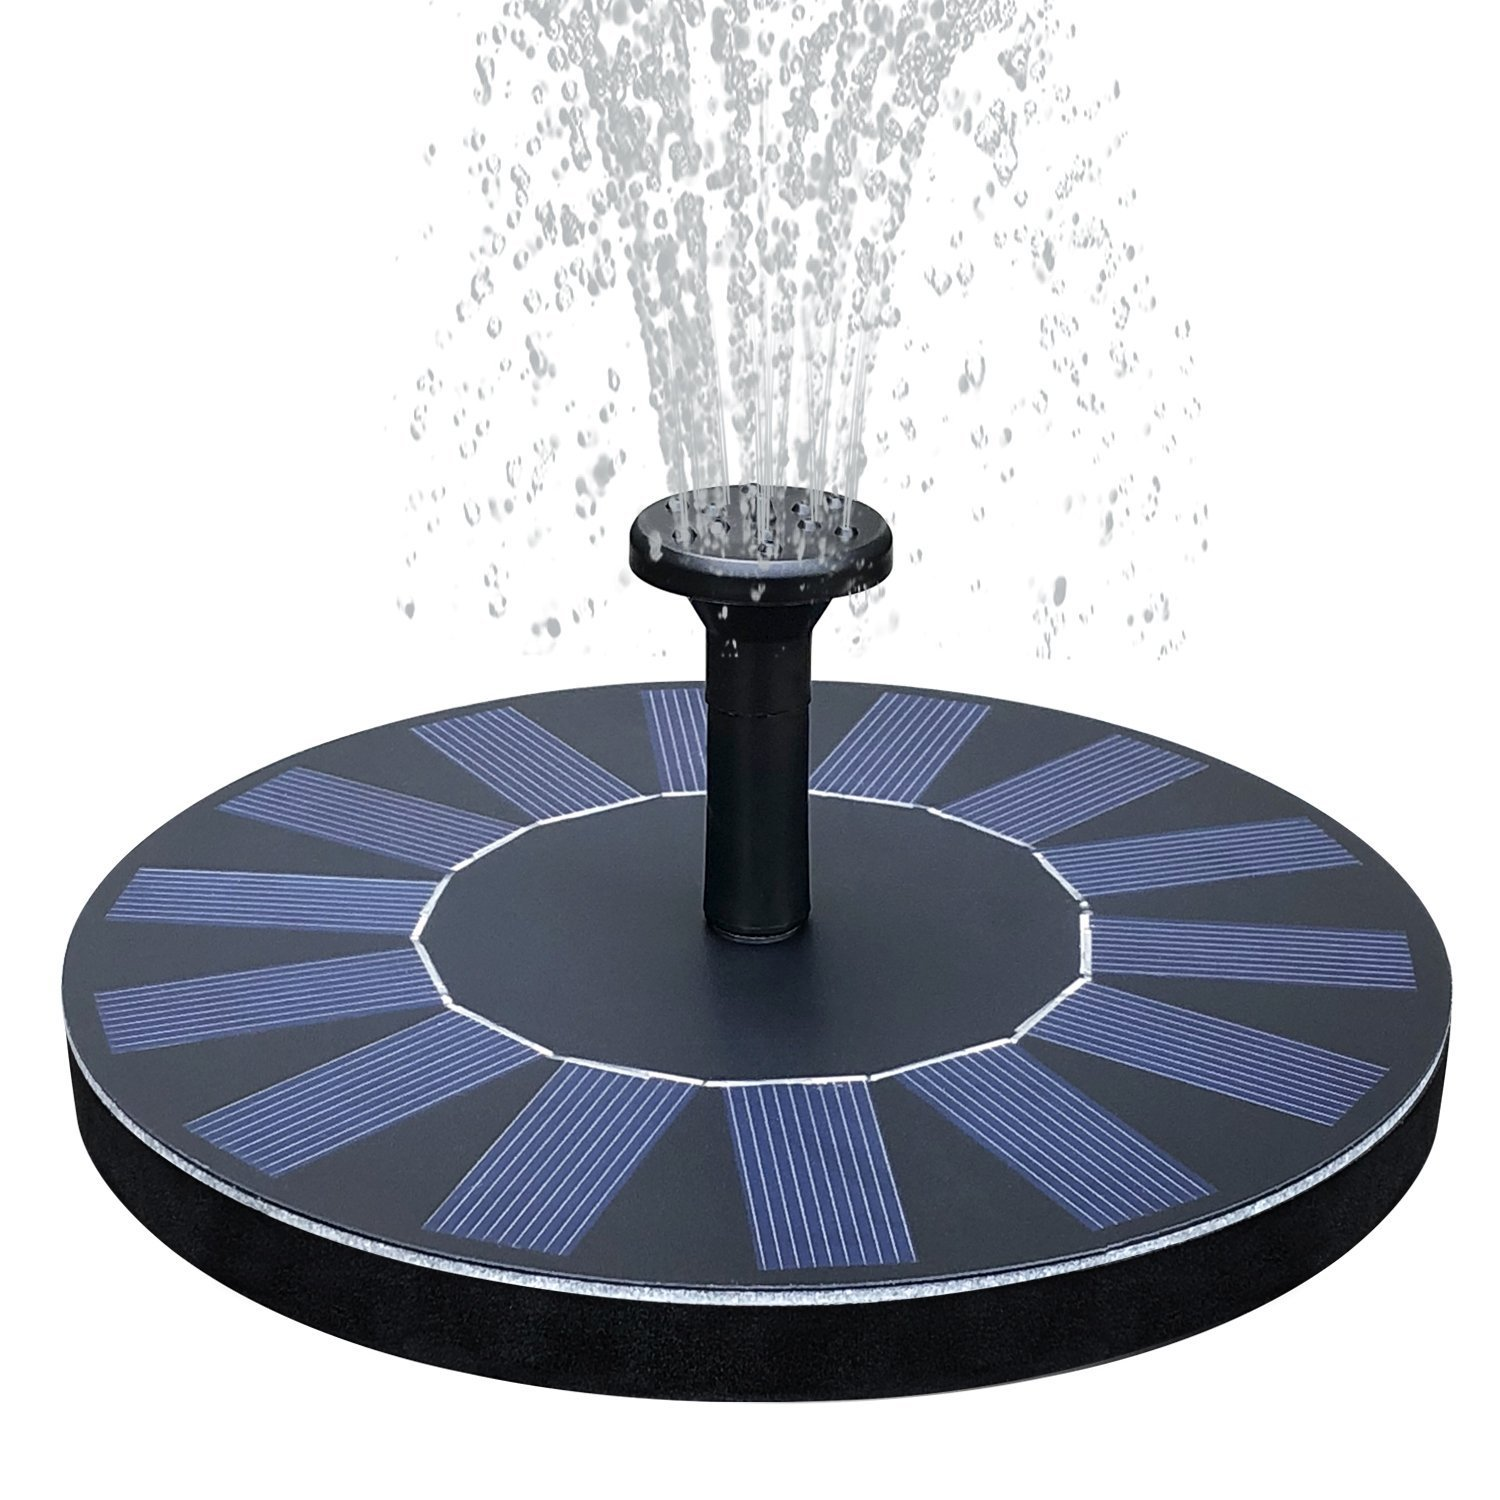 Tranmix Solar Fountain Pump for Bird Bath, 2018 Upgraded Floating Fountains Solar Panel Kit Water Pump for Ponds, Garden, Outdoor Décor by Tranmix (Image #2)